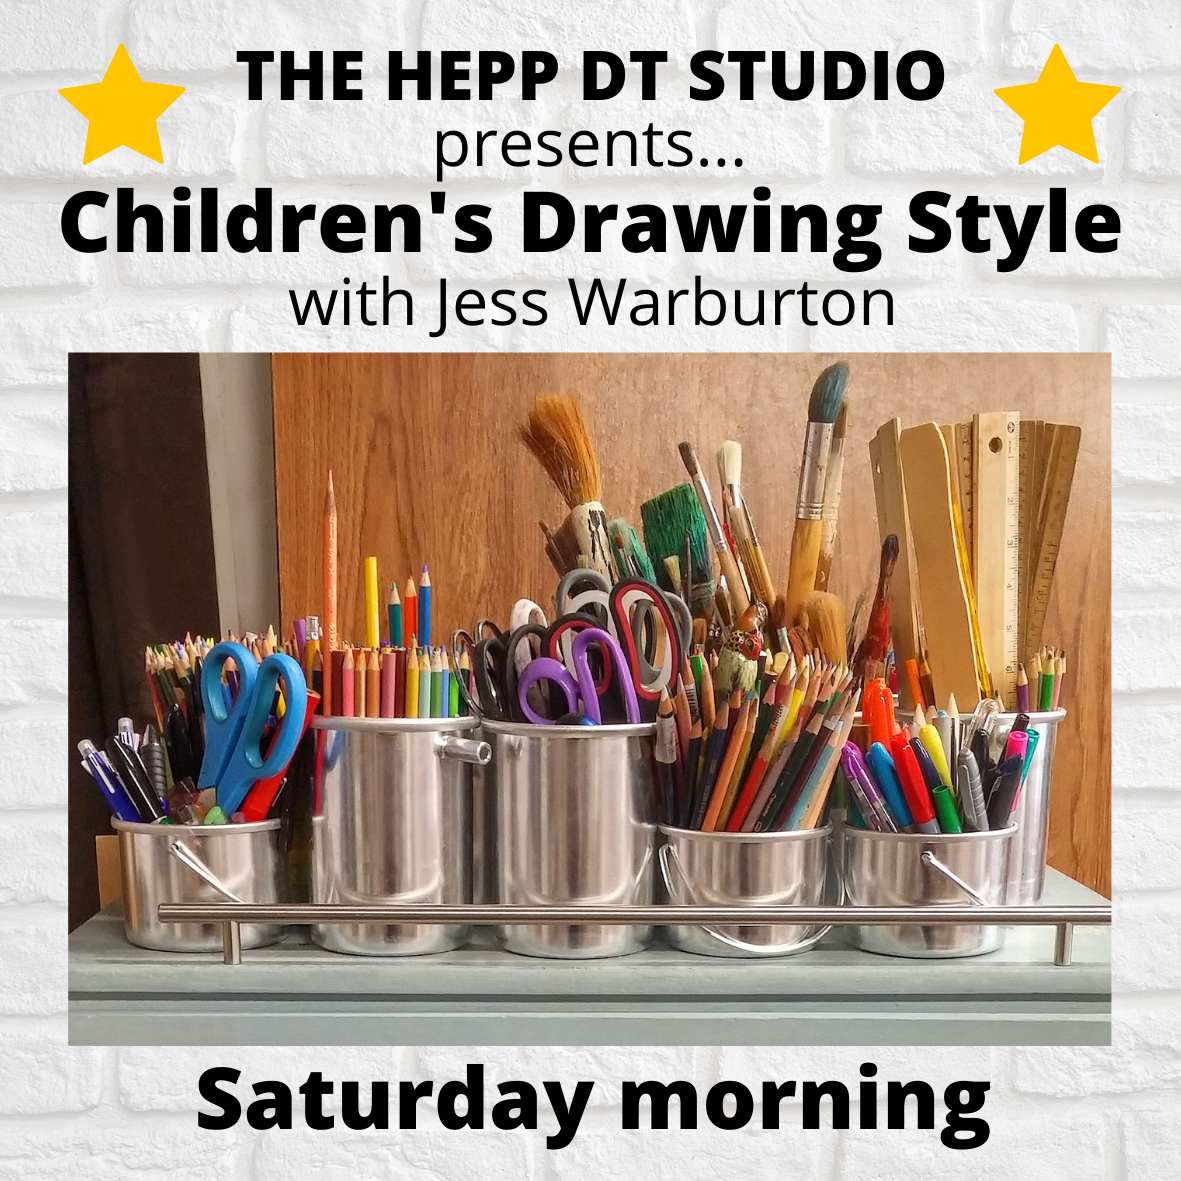 Children's Drawing Style - Saturday morning